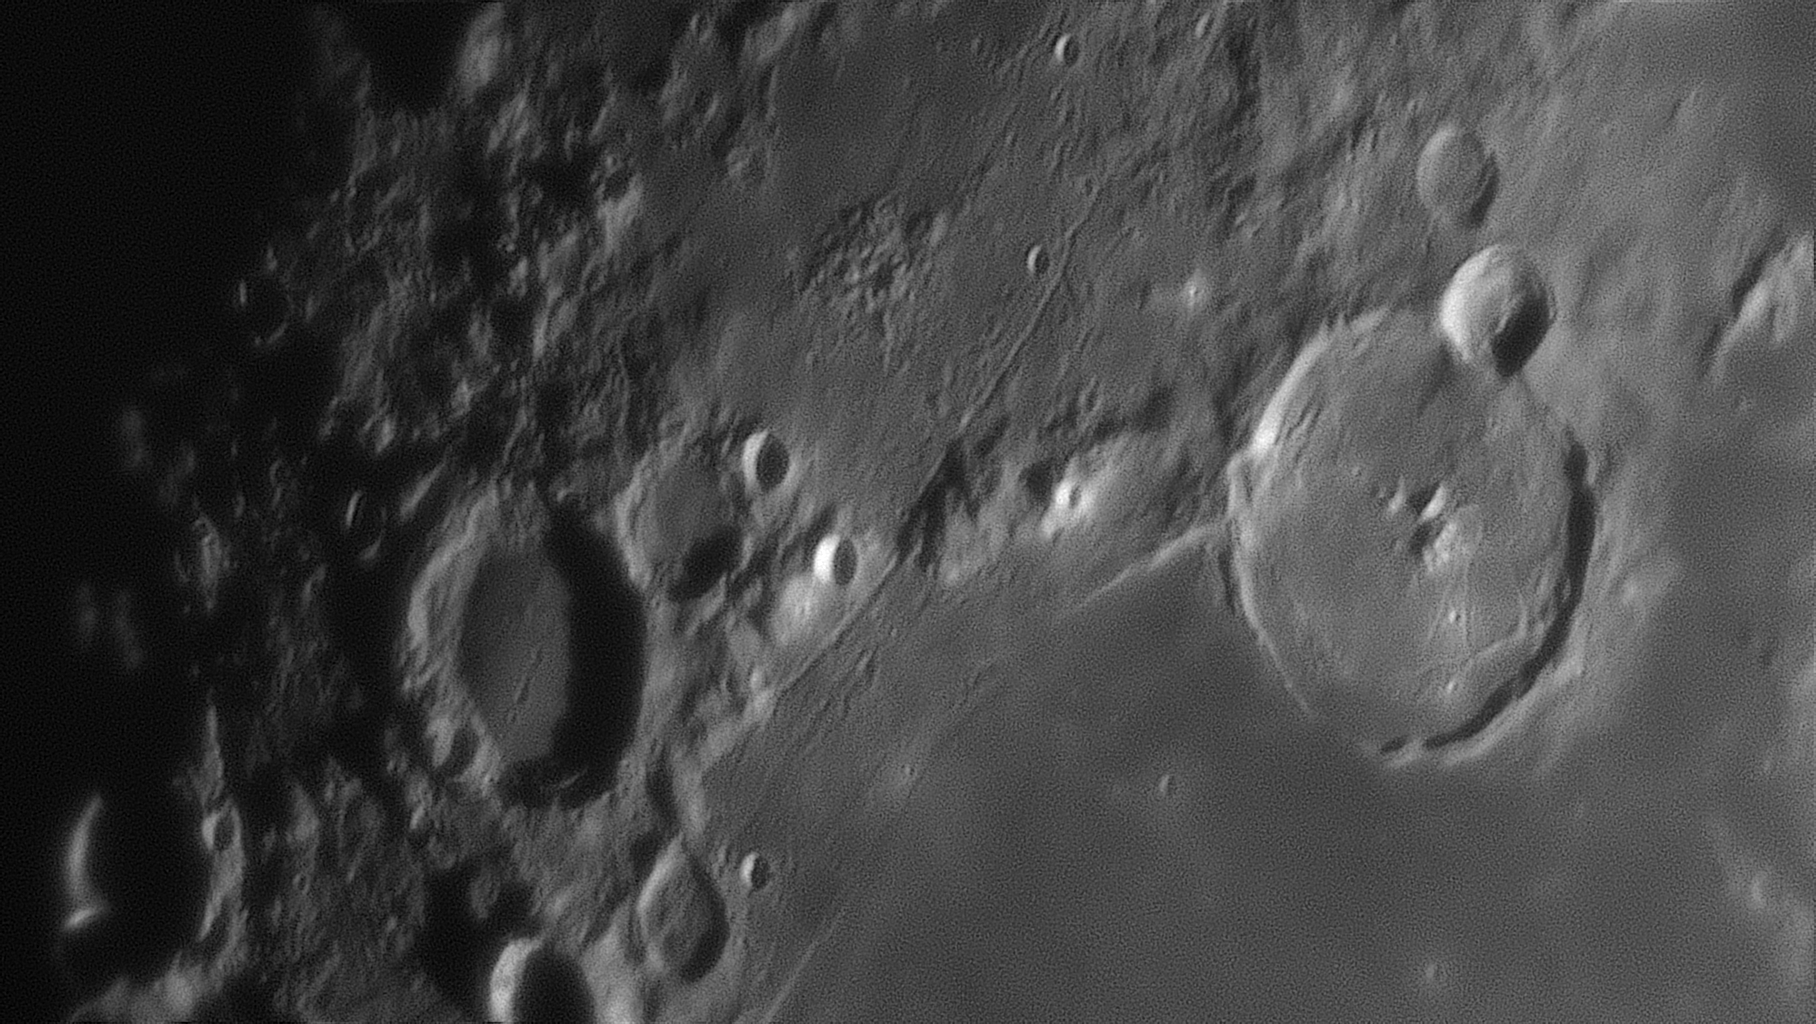 2021-02-23-2222_4-IR-Moon_lapl5_ap614_AS_gassendi.png.c29e8460af136c51cb2c1114144e36ce.png